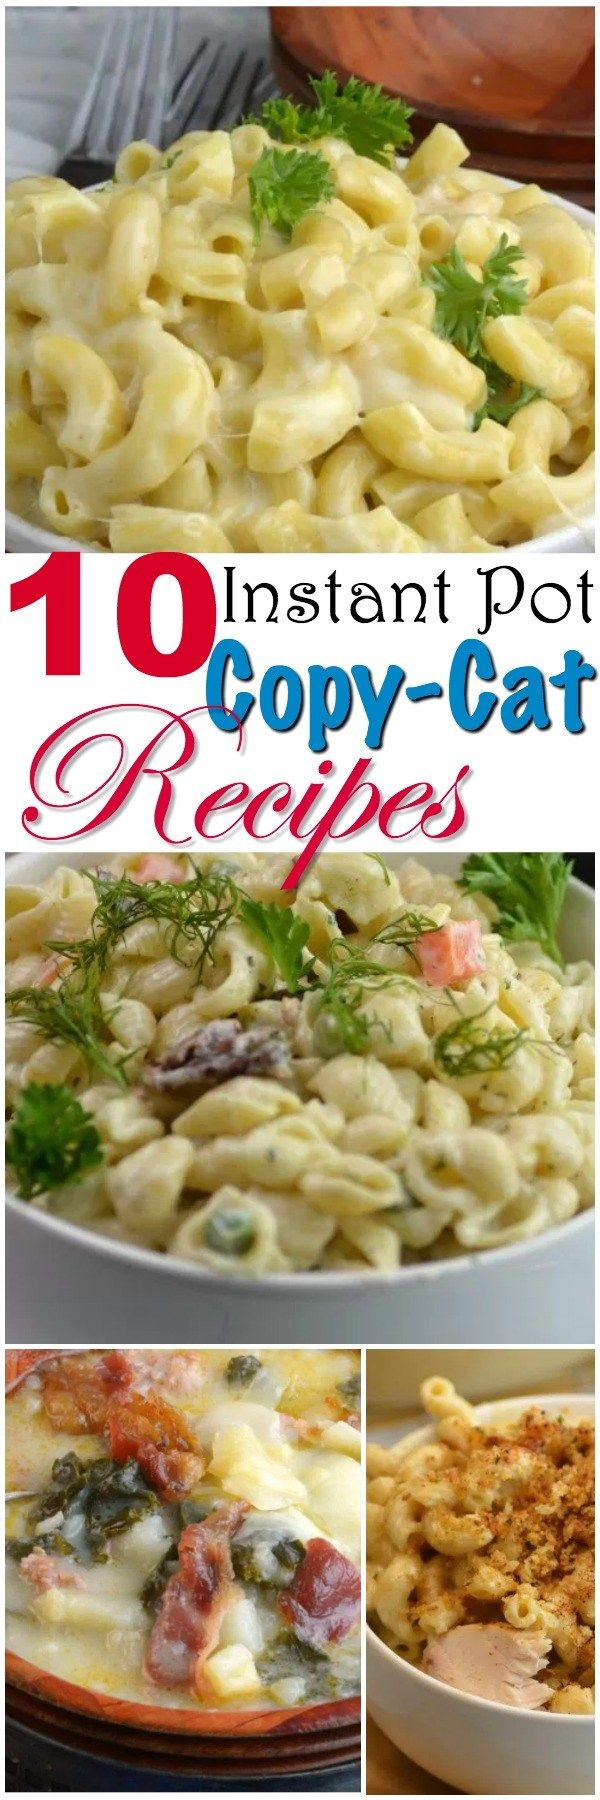 Share with friends91781188Shares10 Instant Pot Copy Cat Recipes Now that my kids are grown and out of the house, my husband and I love to go out to eat. I love to come home and try to make the same dish at home for half the cost right in my Instant Pot. I have 10 …